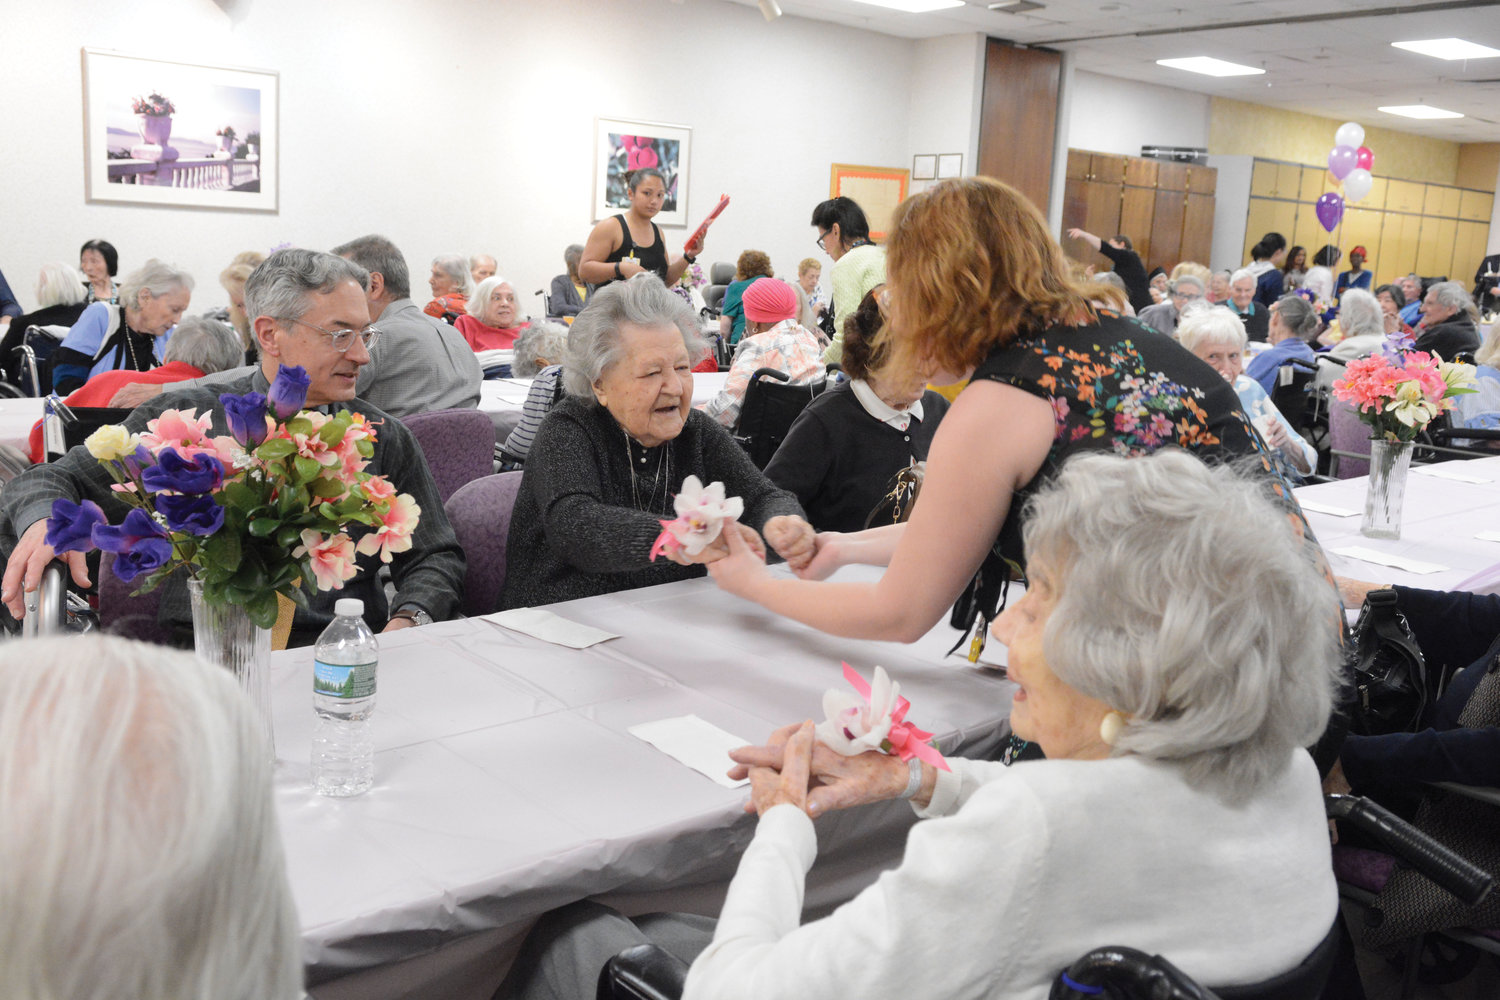 Josephine Pulick, 104, dances from her seat with recreation therapist Caitlin Kelly.